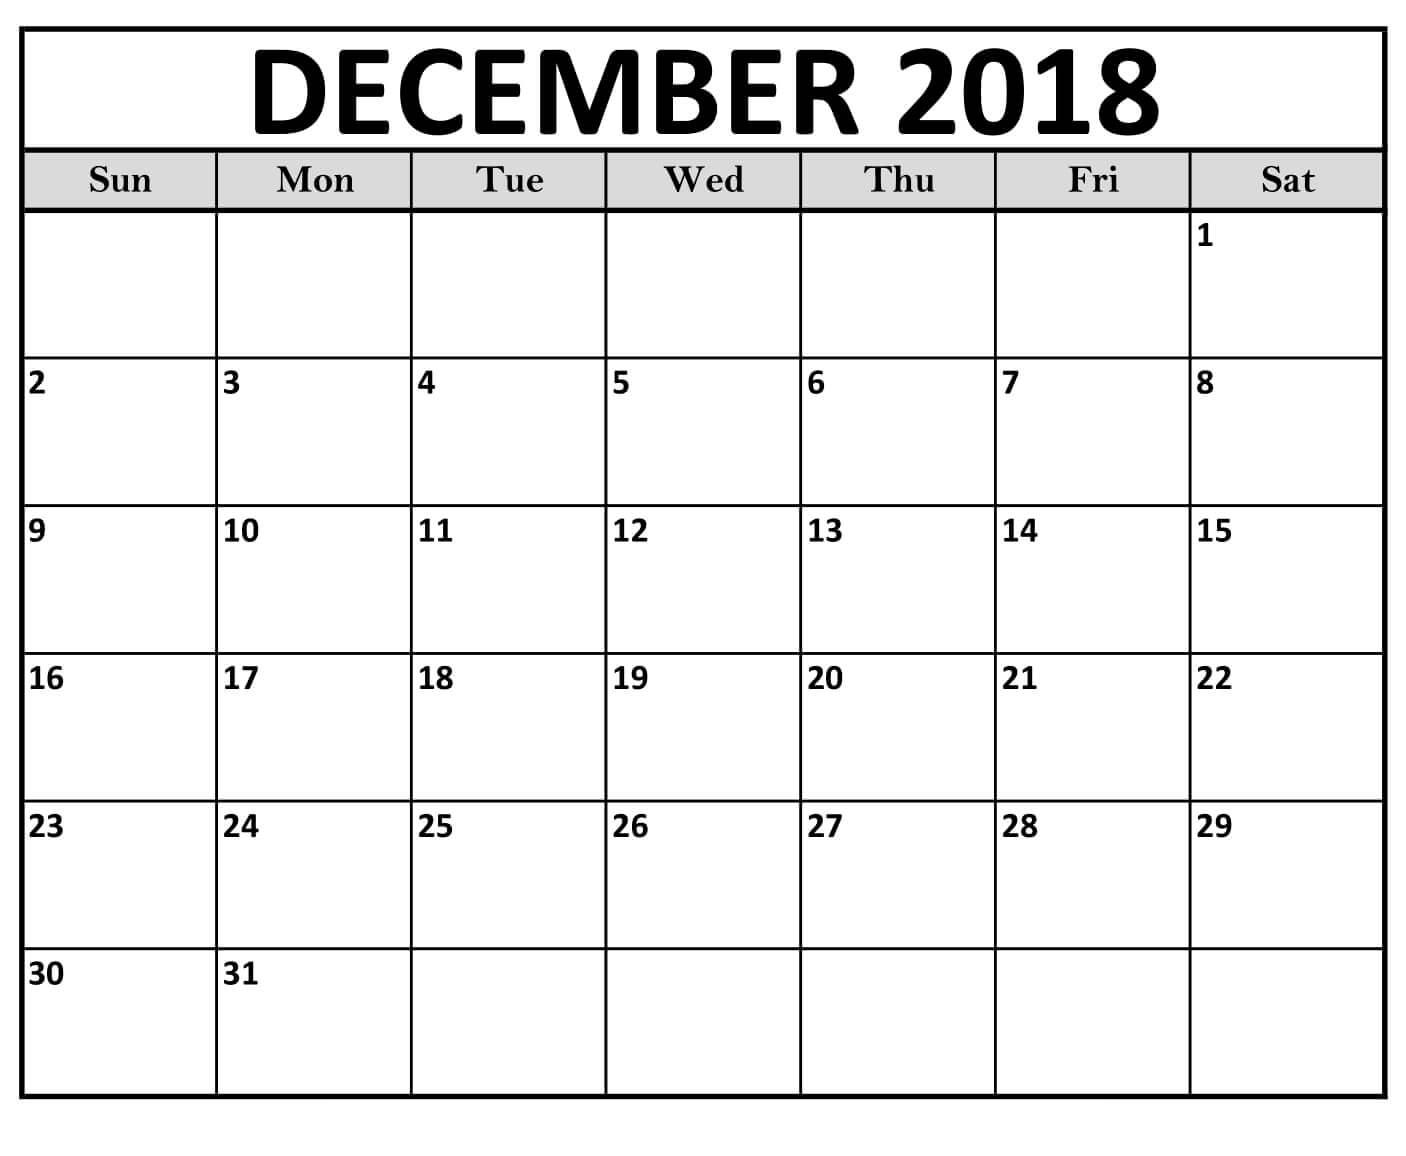 December 2018 Calendar Business Template